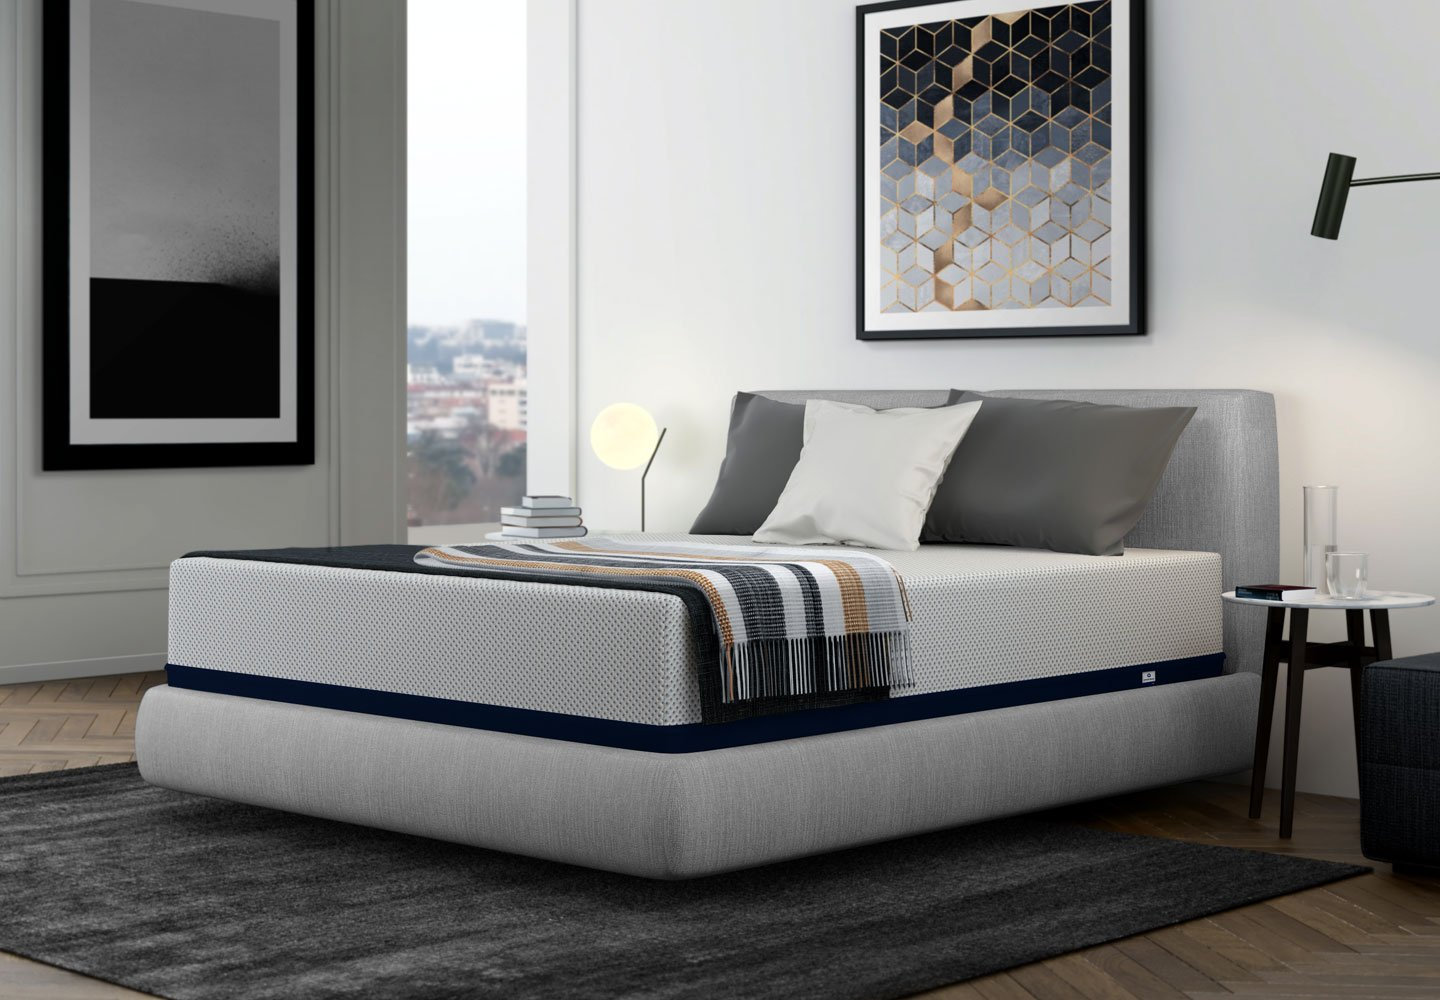 Amerisleep Mattress Reviews AS4 by www.snoremagazine.com